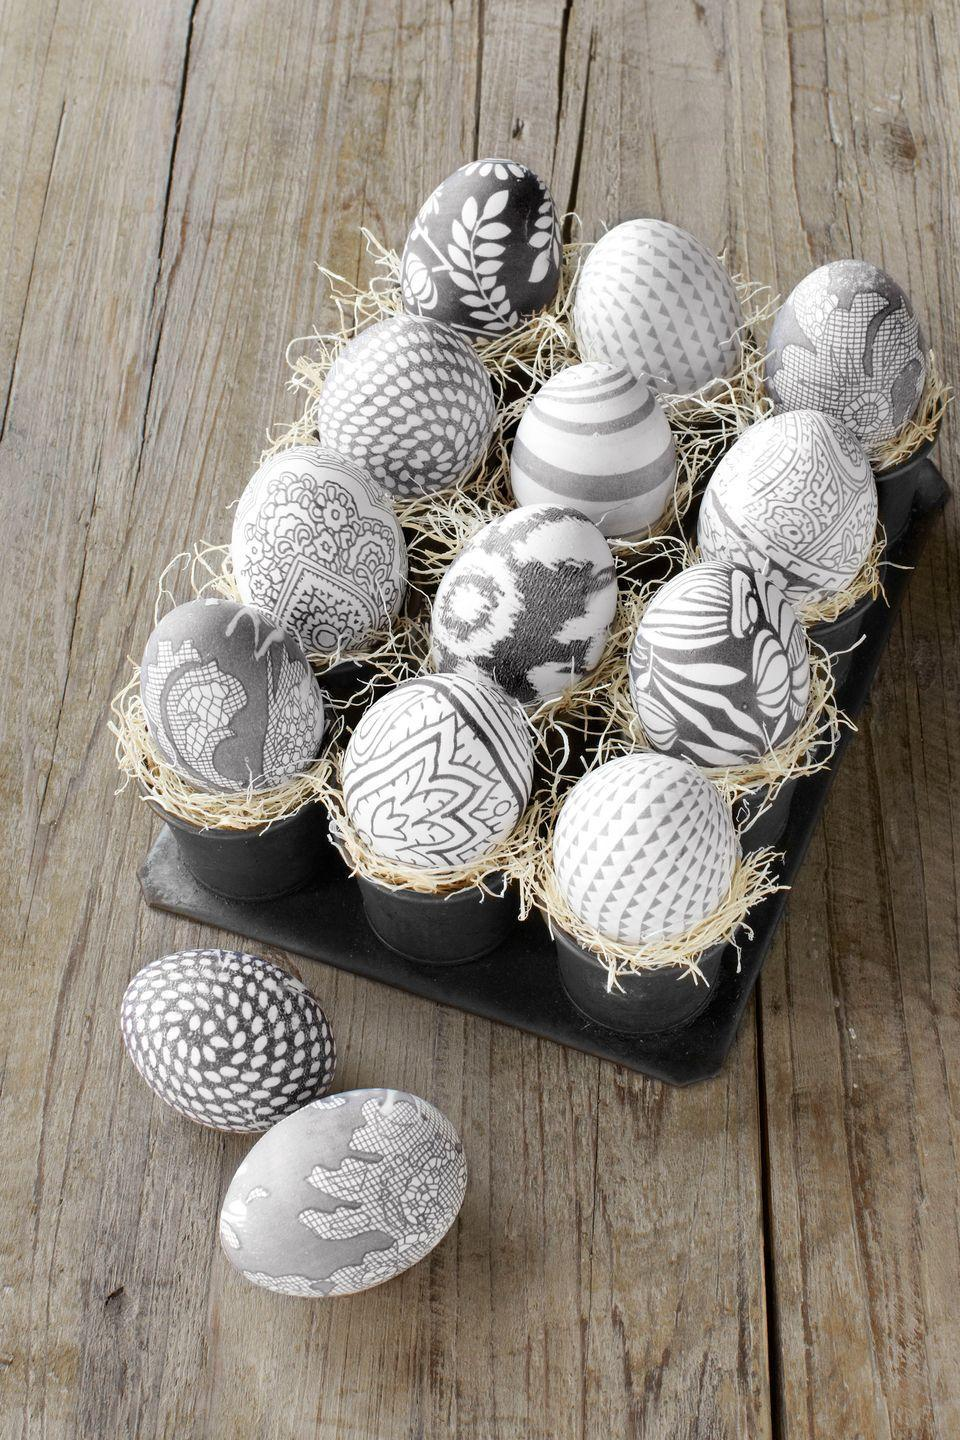 <p>Who knew that silk fabric transfers onto eggshells as easily as the dye in a decorating kit? Regular old vinegar plus hot water does the trick.</p><p><strong>Step 1:</strong> For each egg, cut out a 5-inch square of patterned 100 percent silk. (We limited ourselves to black-and-white prints to achieve the effect above; colored patterns yield more vibrant results.) Lightly dampen the fabric, then lay it flat, right side up, and place your egg in the center. Gather the fabric tightly around the egg, like a beggar's purse, and secure with a rubber band. Repeat this step for the same egg, using a same-size square of plain white cotton and a second rubber band. Note: Use blown eggs if you'd like to keep your handiwork longer.</p><p><strong>Step 2:</strong> Place eggs in a single layer in a nonreactive pot and add enough water to cover them by 2 inches. Add 4 tablespoons of white vinegar. Bring the water to a boil, then reduce heat and simmer for 40 minutes.</p><p><strong>Step 3:</strong> Remove eggs with tongs and cool about 20 minutes. Then unwrap the fabrics to reveal the exquisite designs.</p>